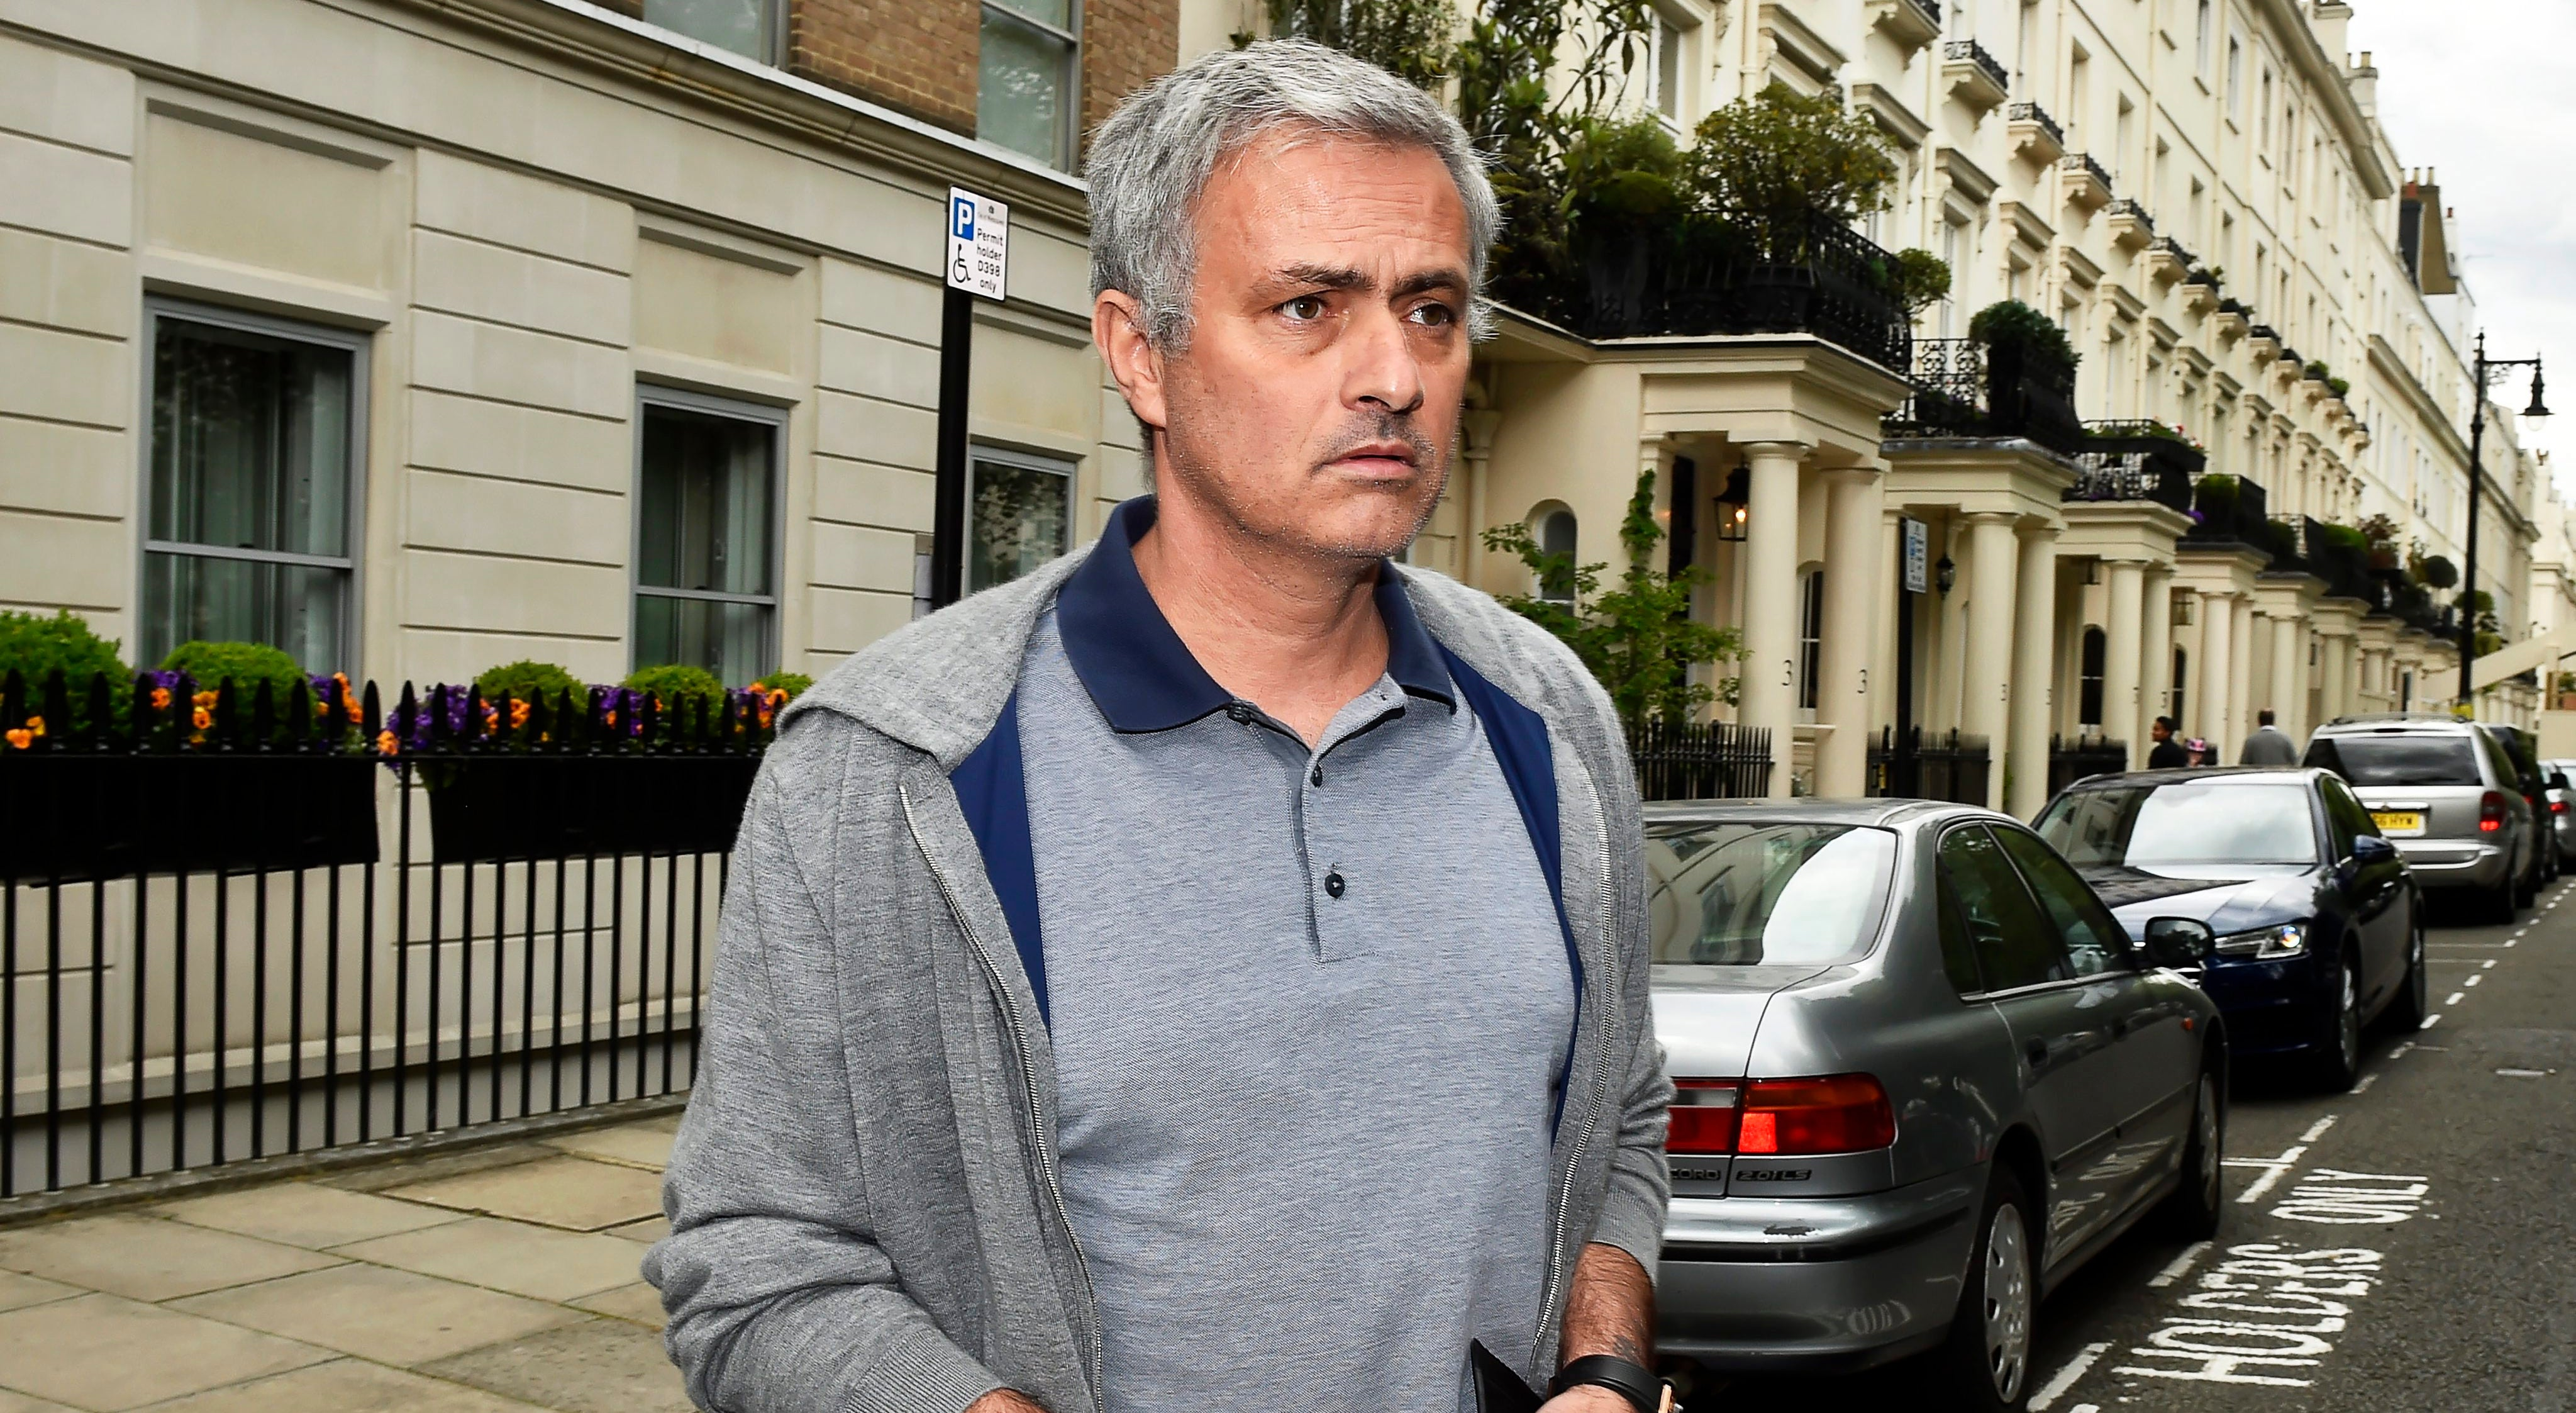 Oficial. Mourinho despedido do Manchester United